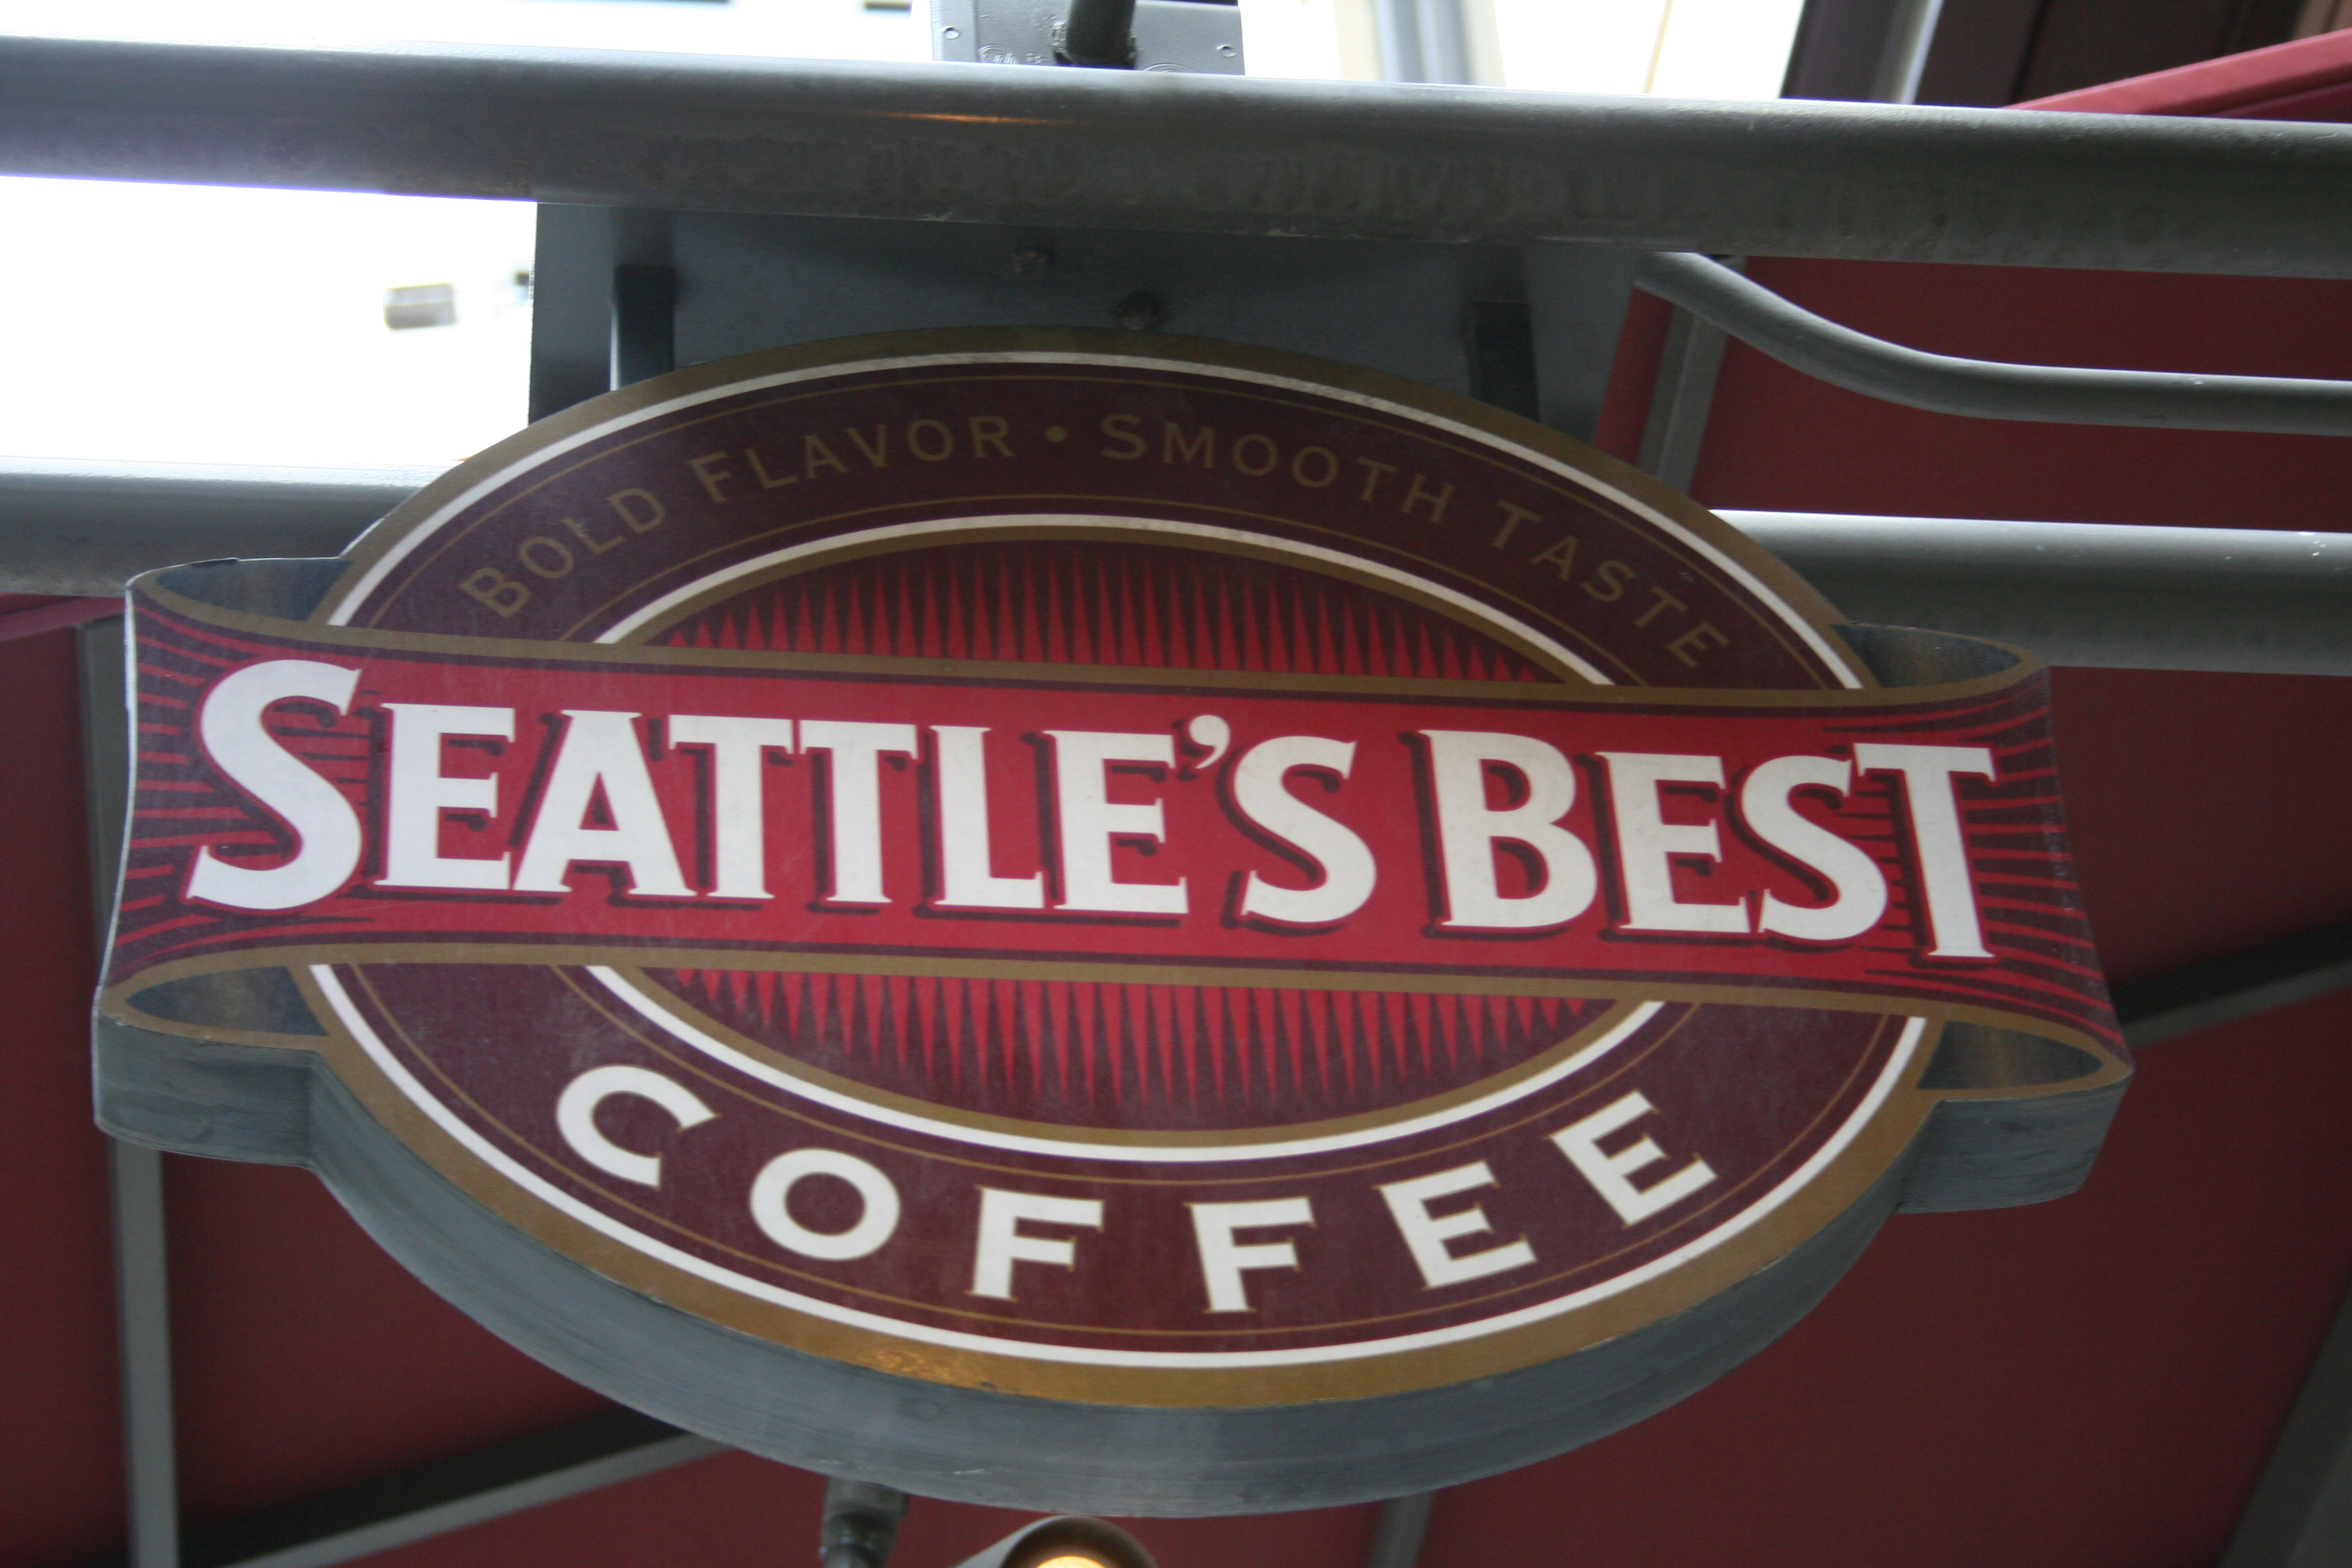 Locally roasted coffee beans here in Seattle including Herkimer, Victrola and Caffe Ladro - Cheers! Ian.